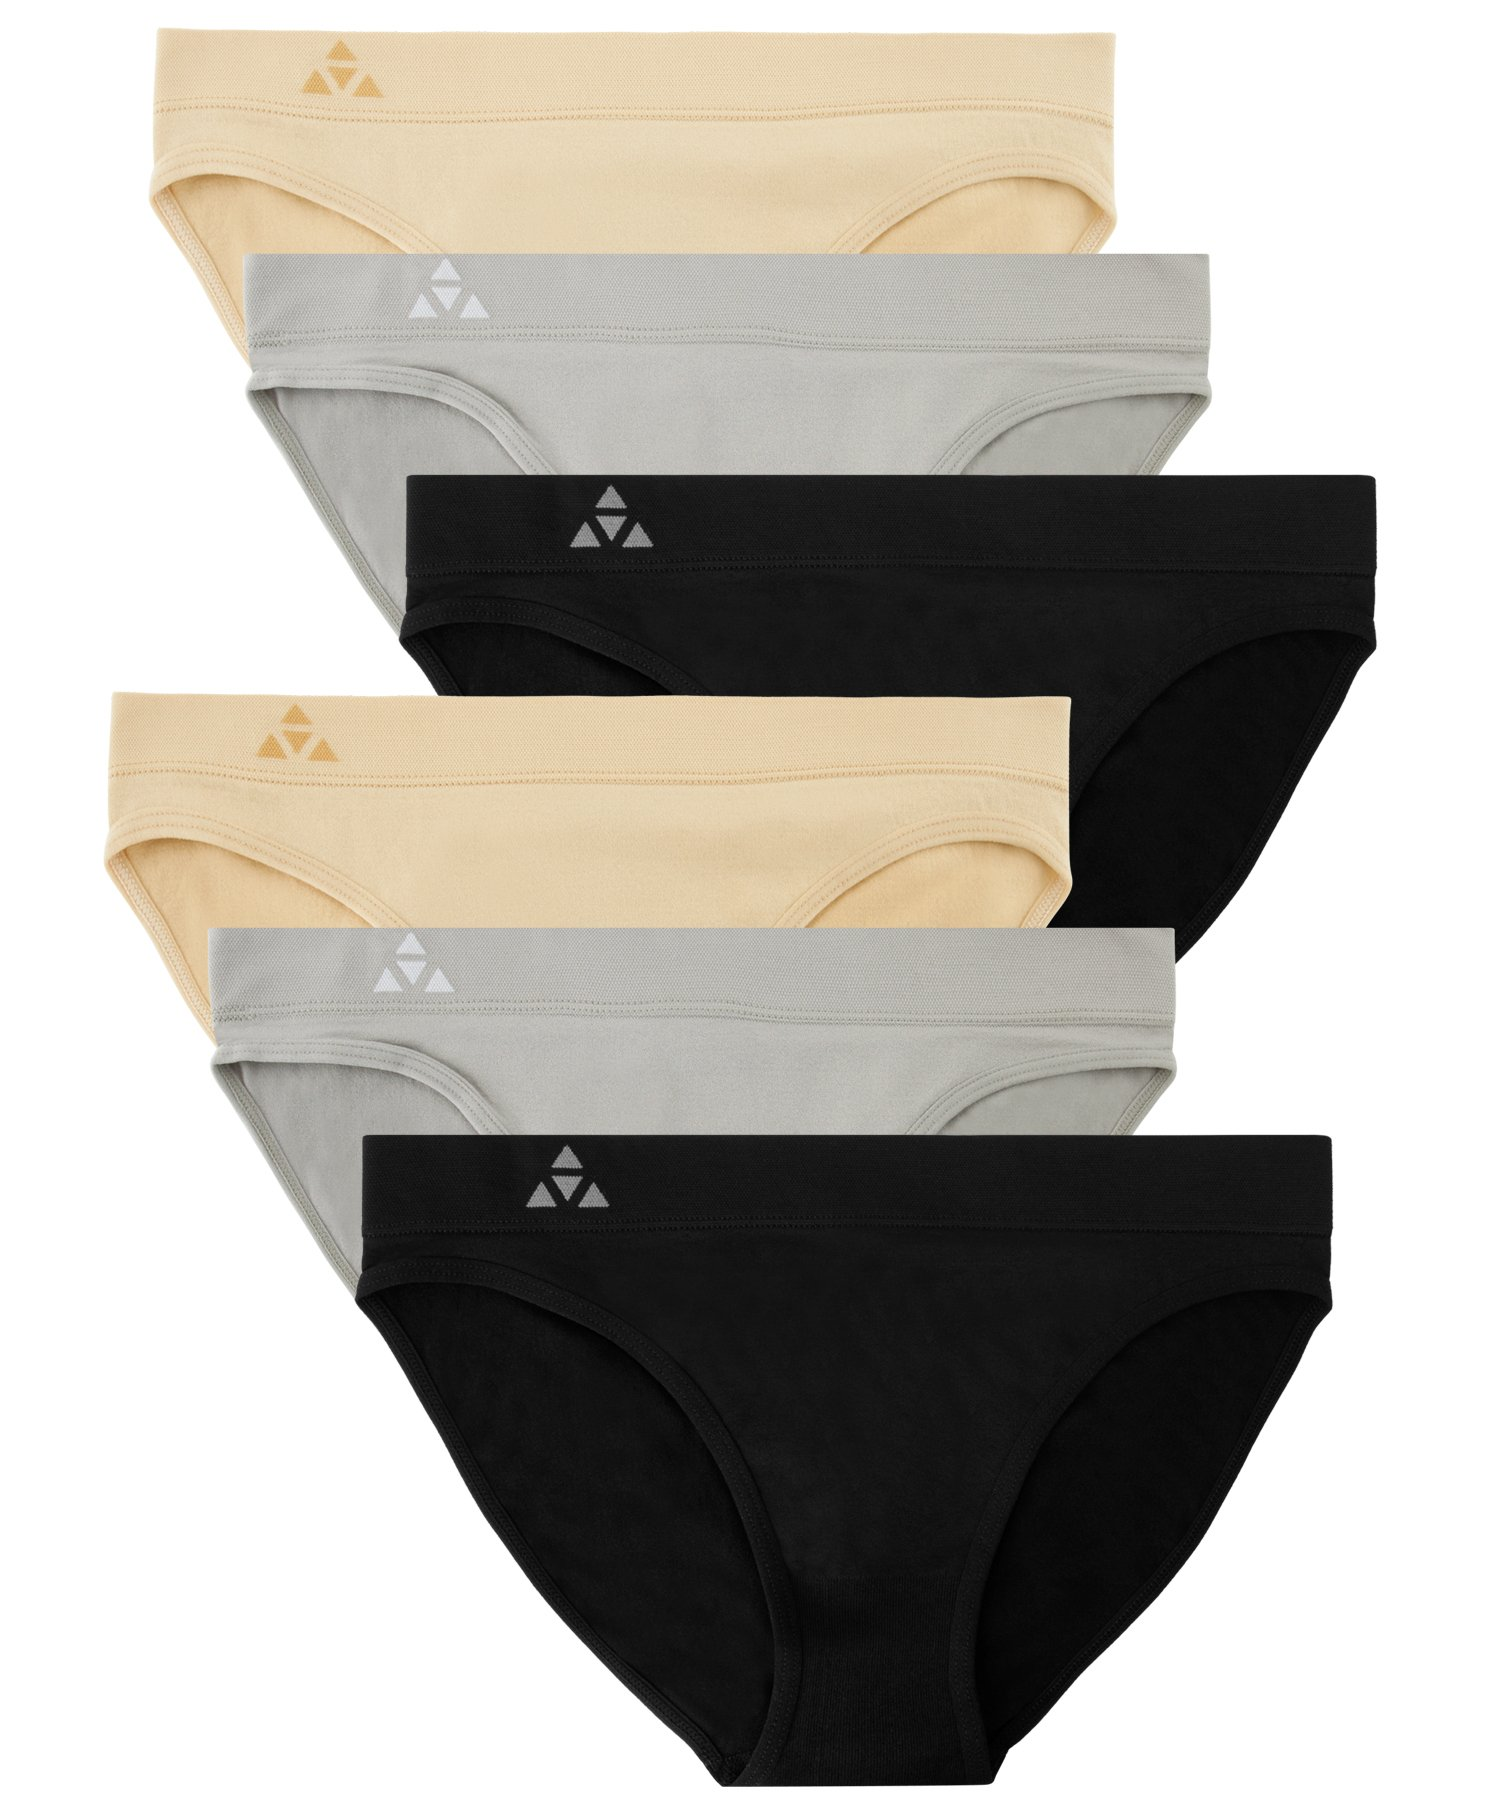 Balanced Tech Women's 6 Pack Seamless Low-Rise Bikini Panties - Black/Nude/Gray - X-Large